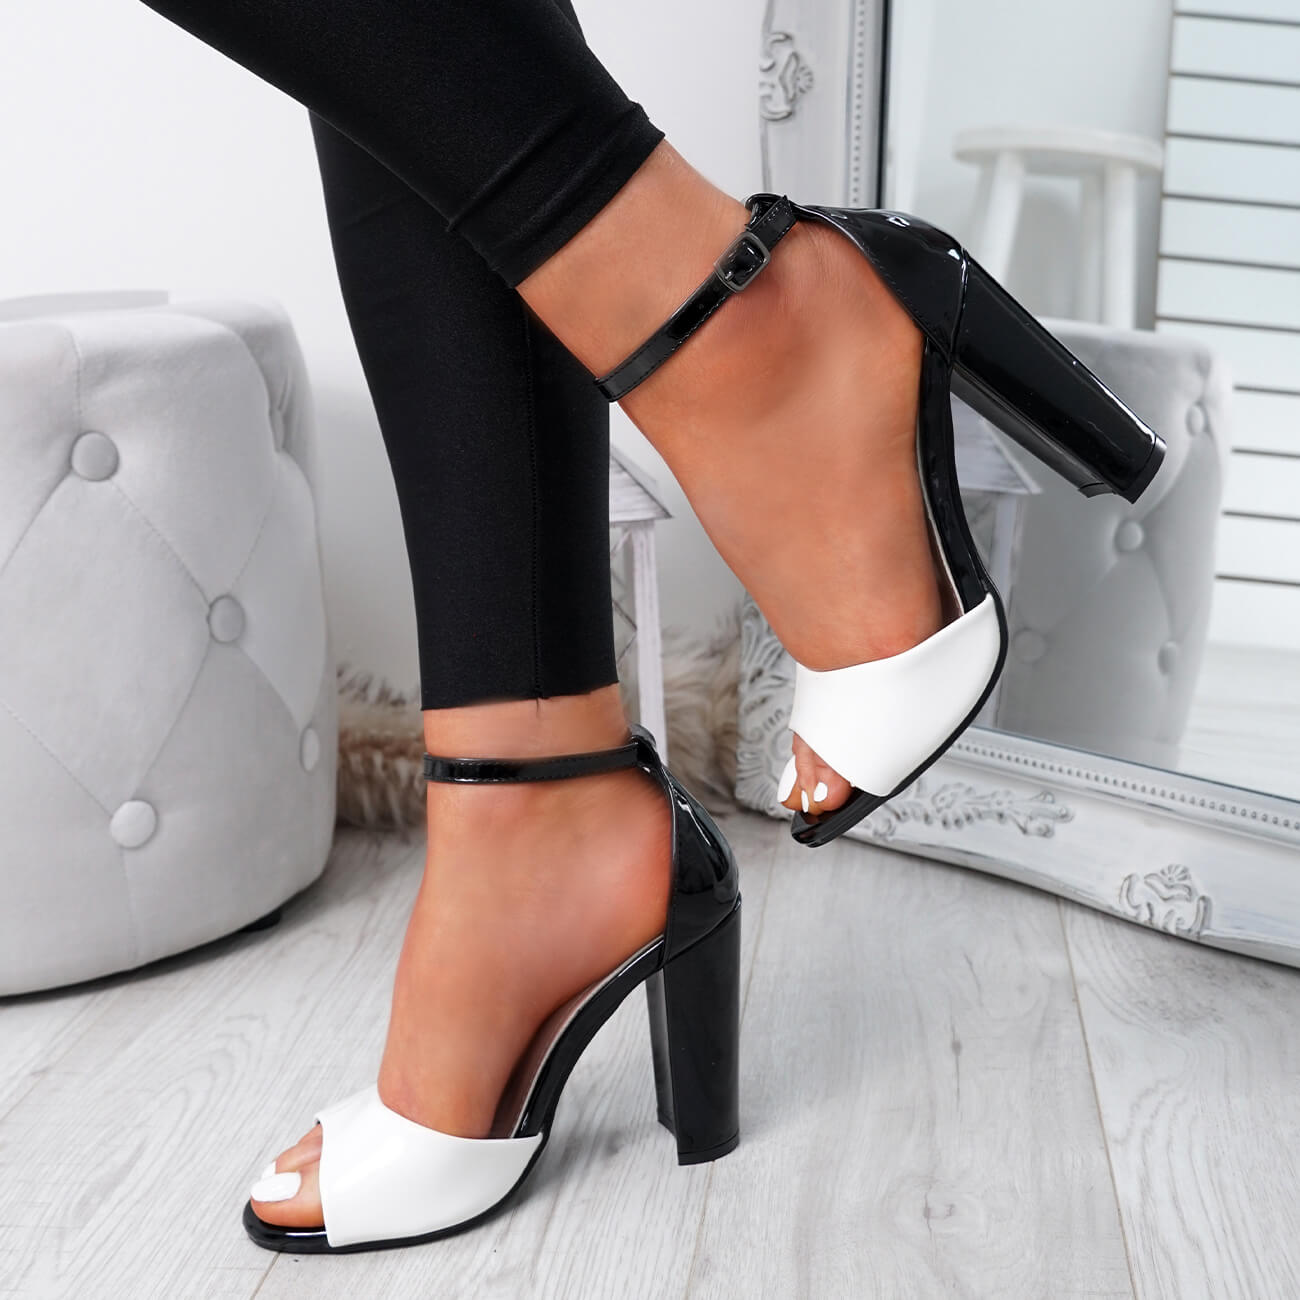 WOMENS-LADIES-ANKLE-STRAP-HIGH-BLOCK-HEEL-SANDALS-PEEP-TOE-OFFICE-CASUAL-SHOES thumbnail 28